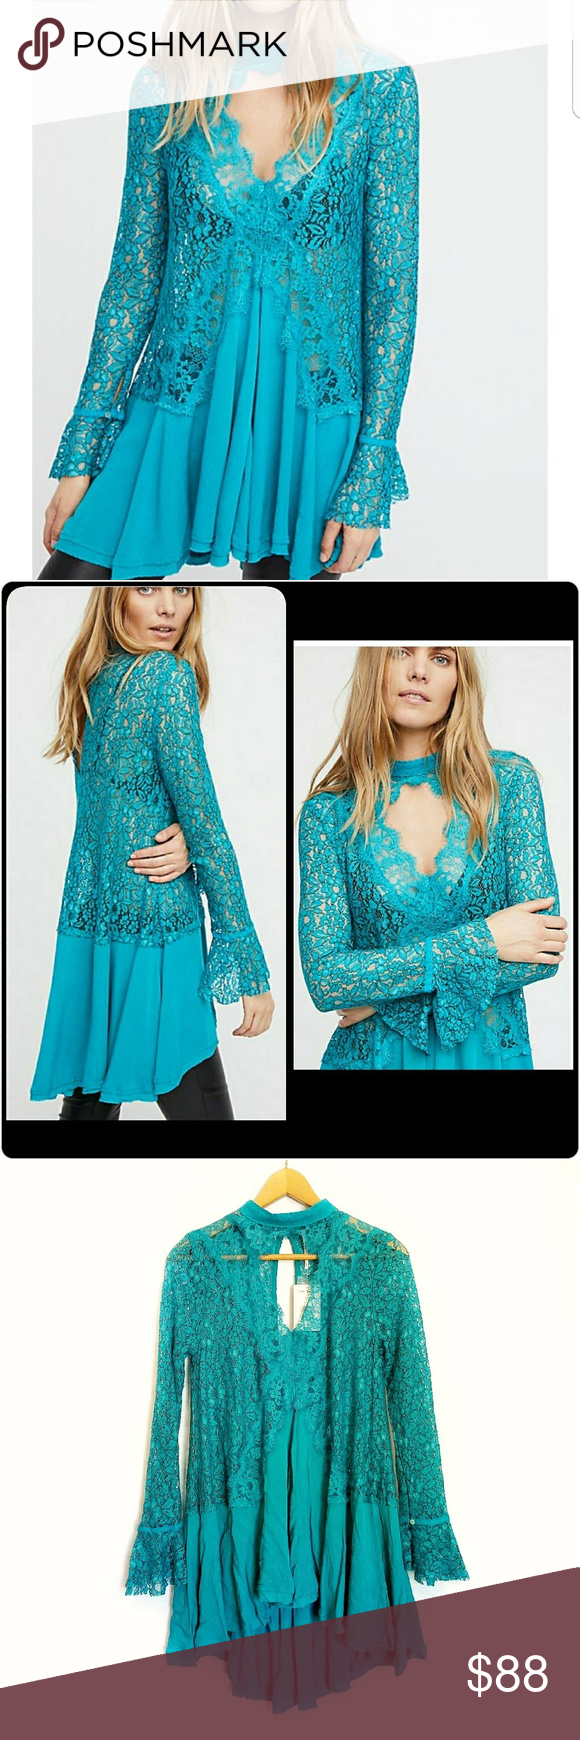 Nwt free people tunic top lace crepe swing dress nwt my posh picks